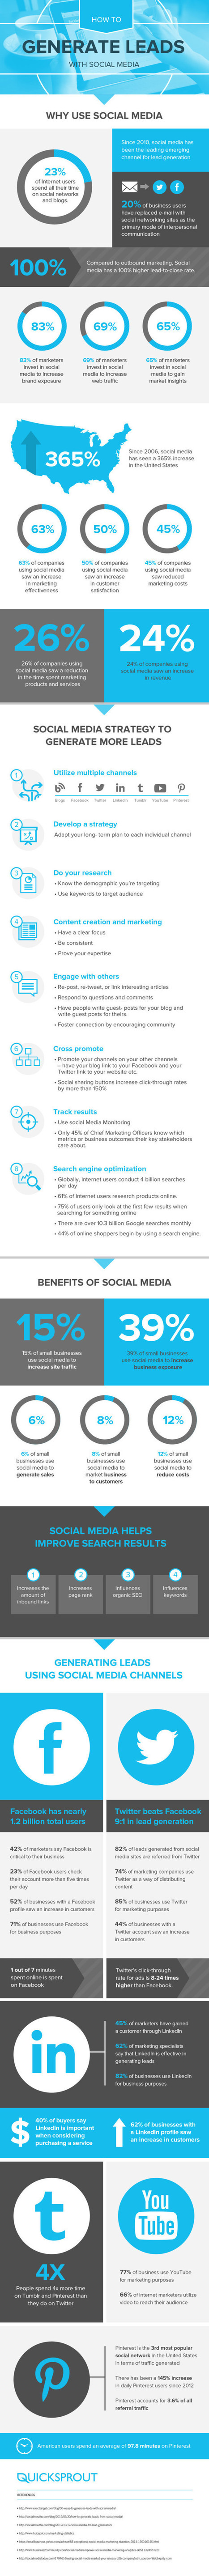 Here's How You Generate More Leads with Social Media #infographic | MarketingHits | Scoop.it